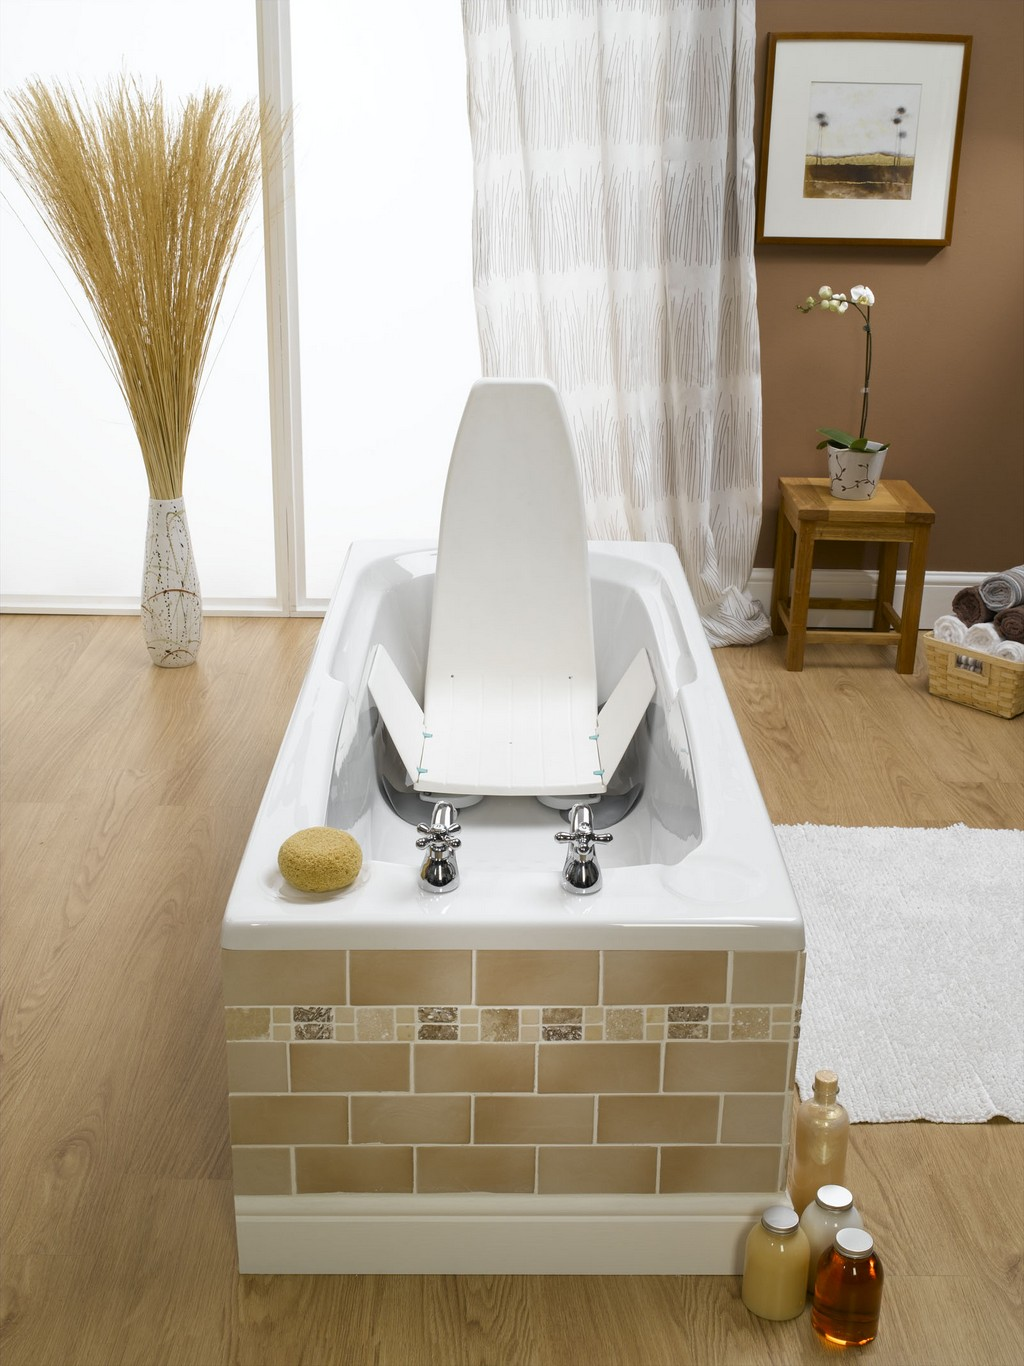 bath tub chair lifts, bath lift for the disabled, liberty bath lift, bath lift sonaris